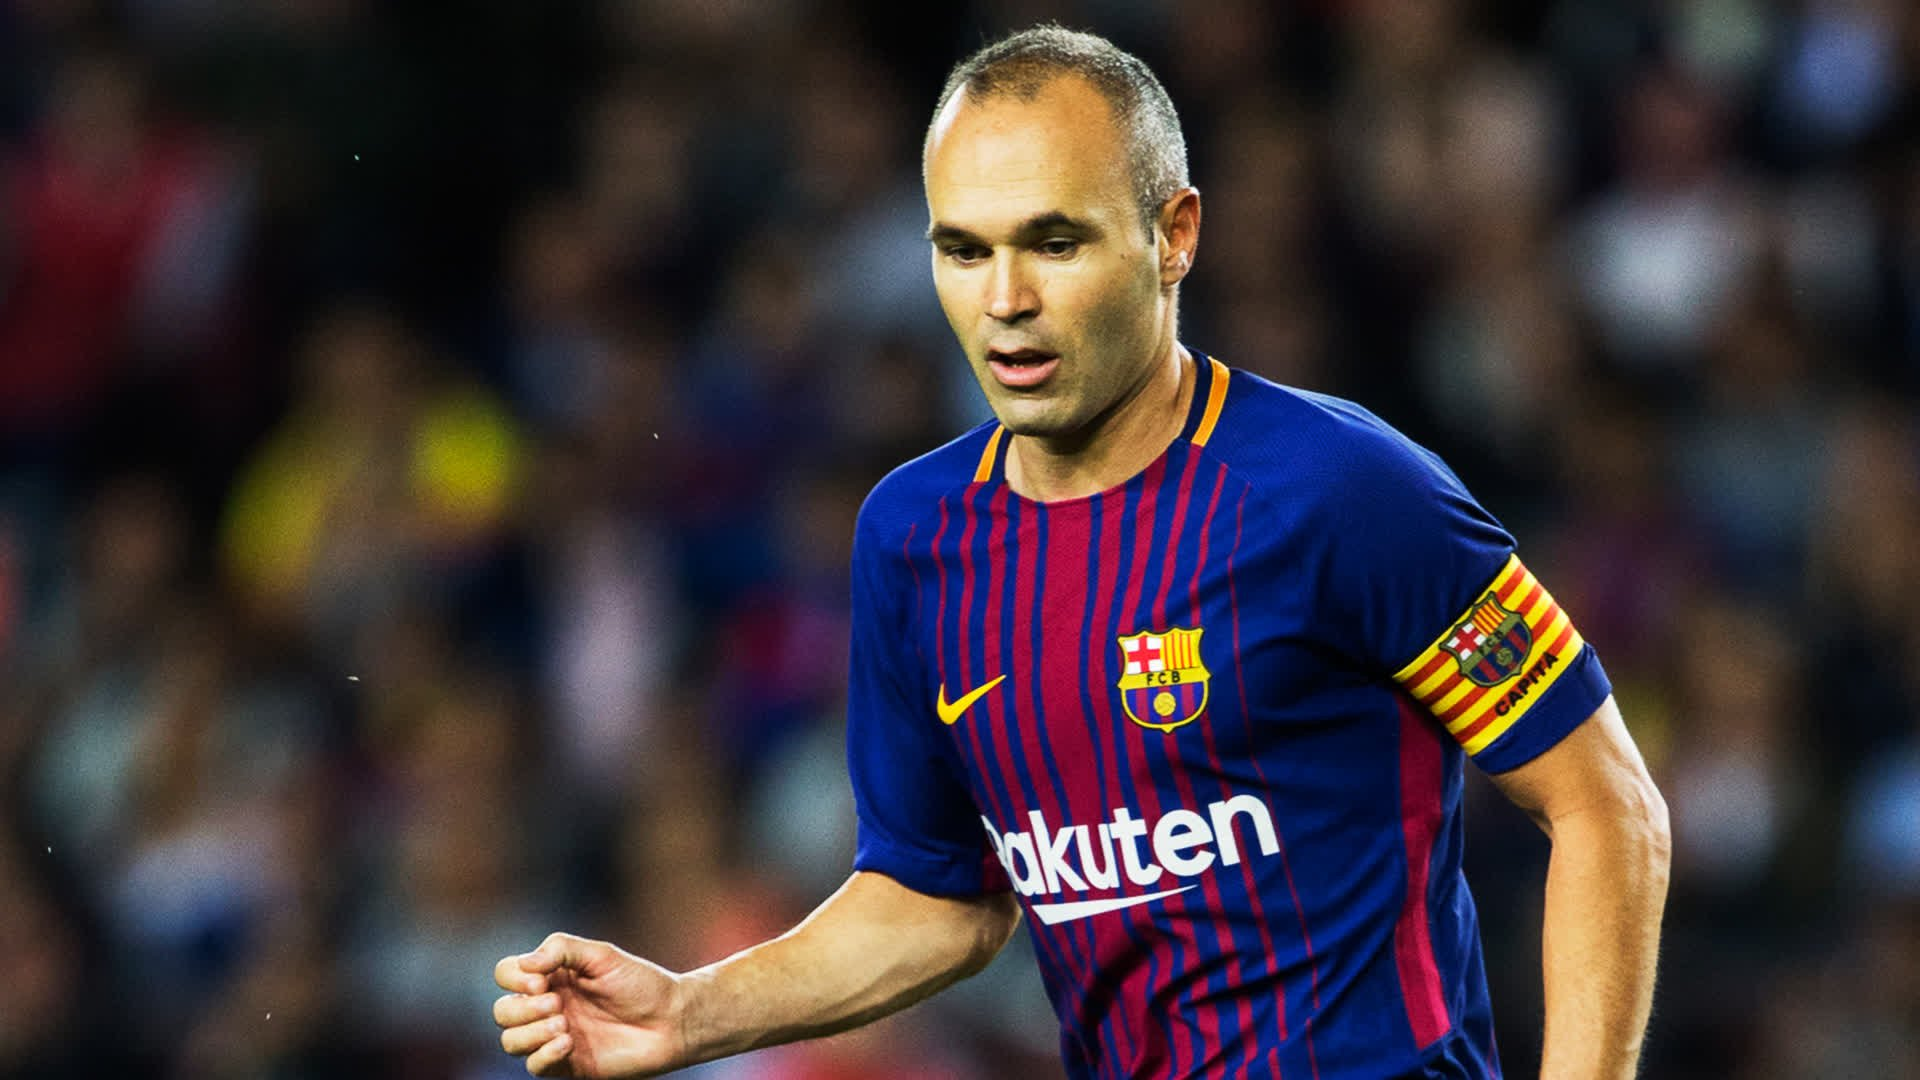 #ForeverIniesta ��  @andresiniesta8  ���� https://t.co/pGginzIztf